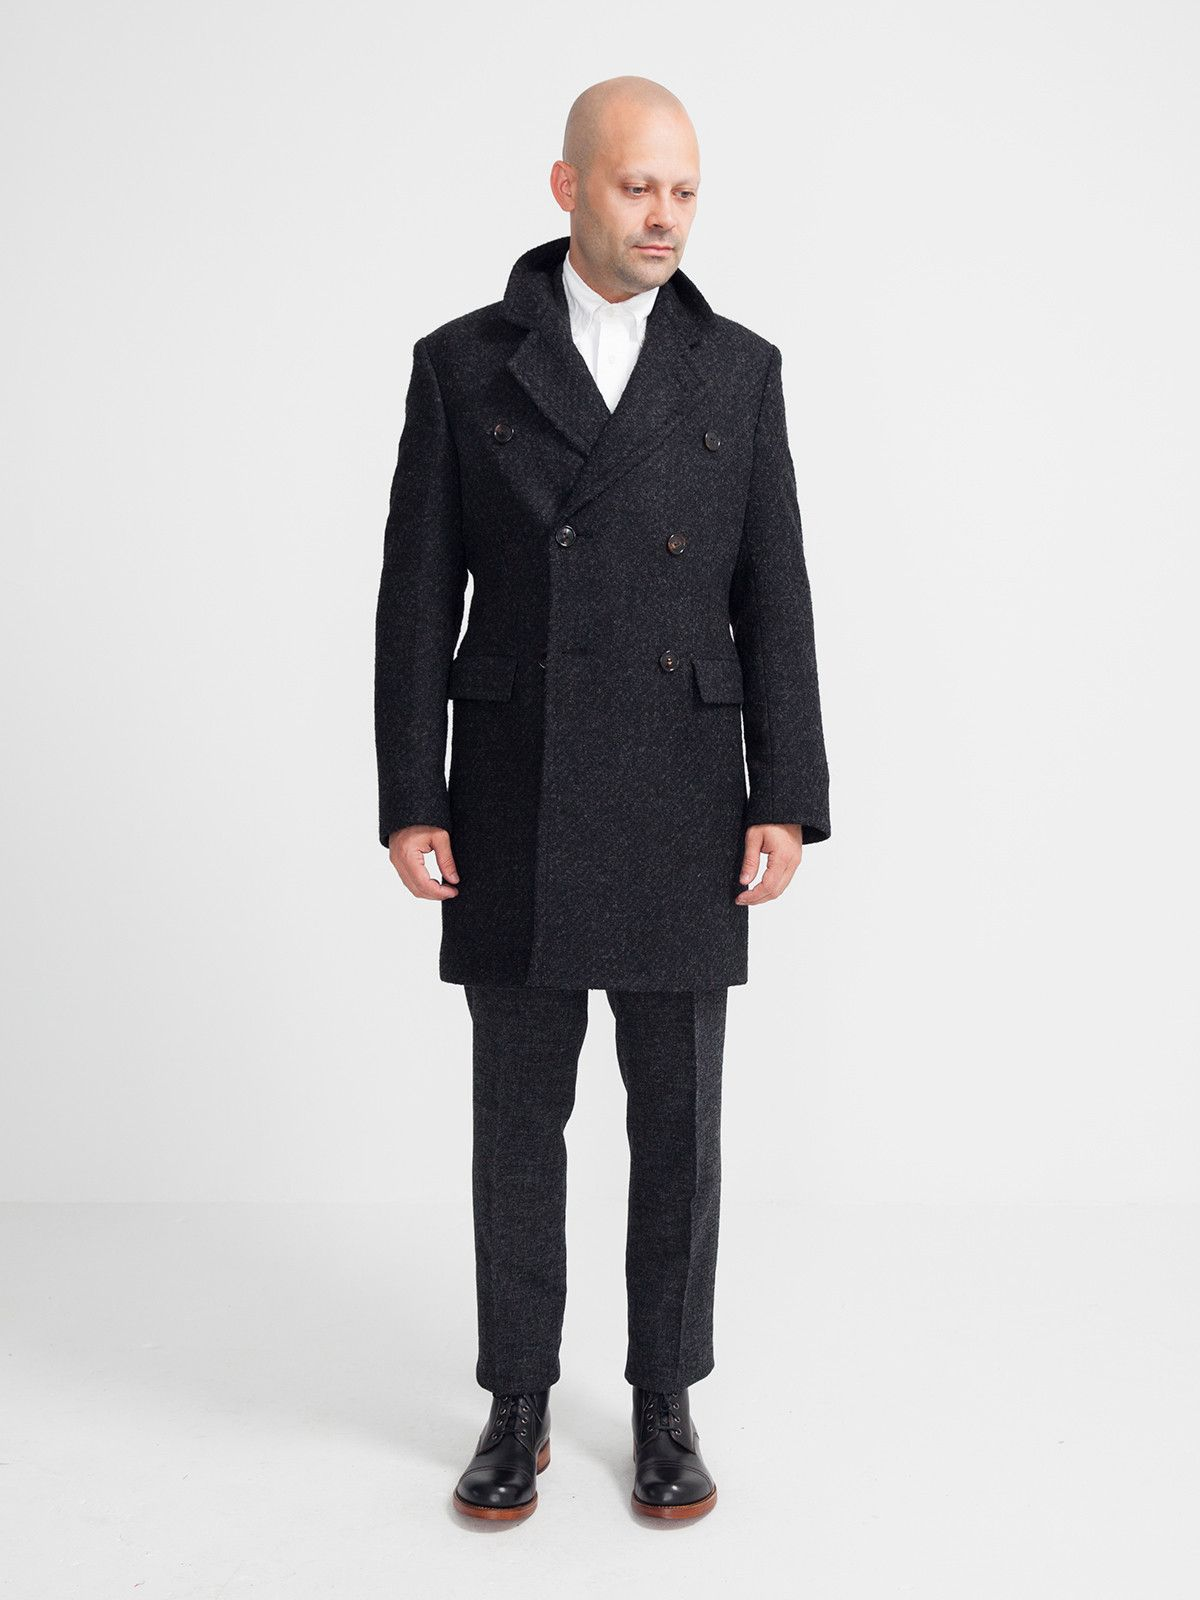 DOUBLE BREASTED COAT DARK GREY | GENTRY NYC